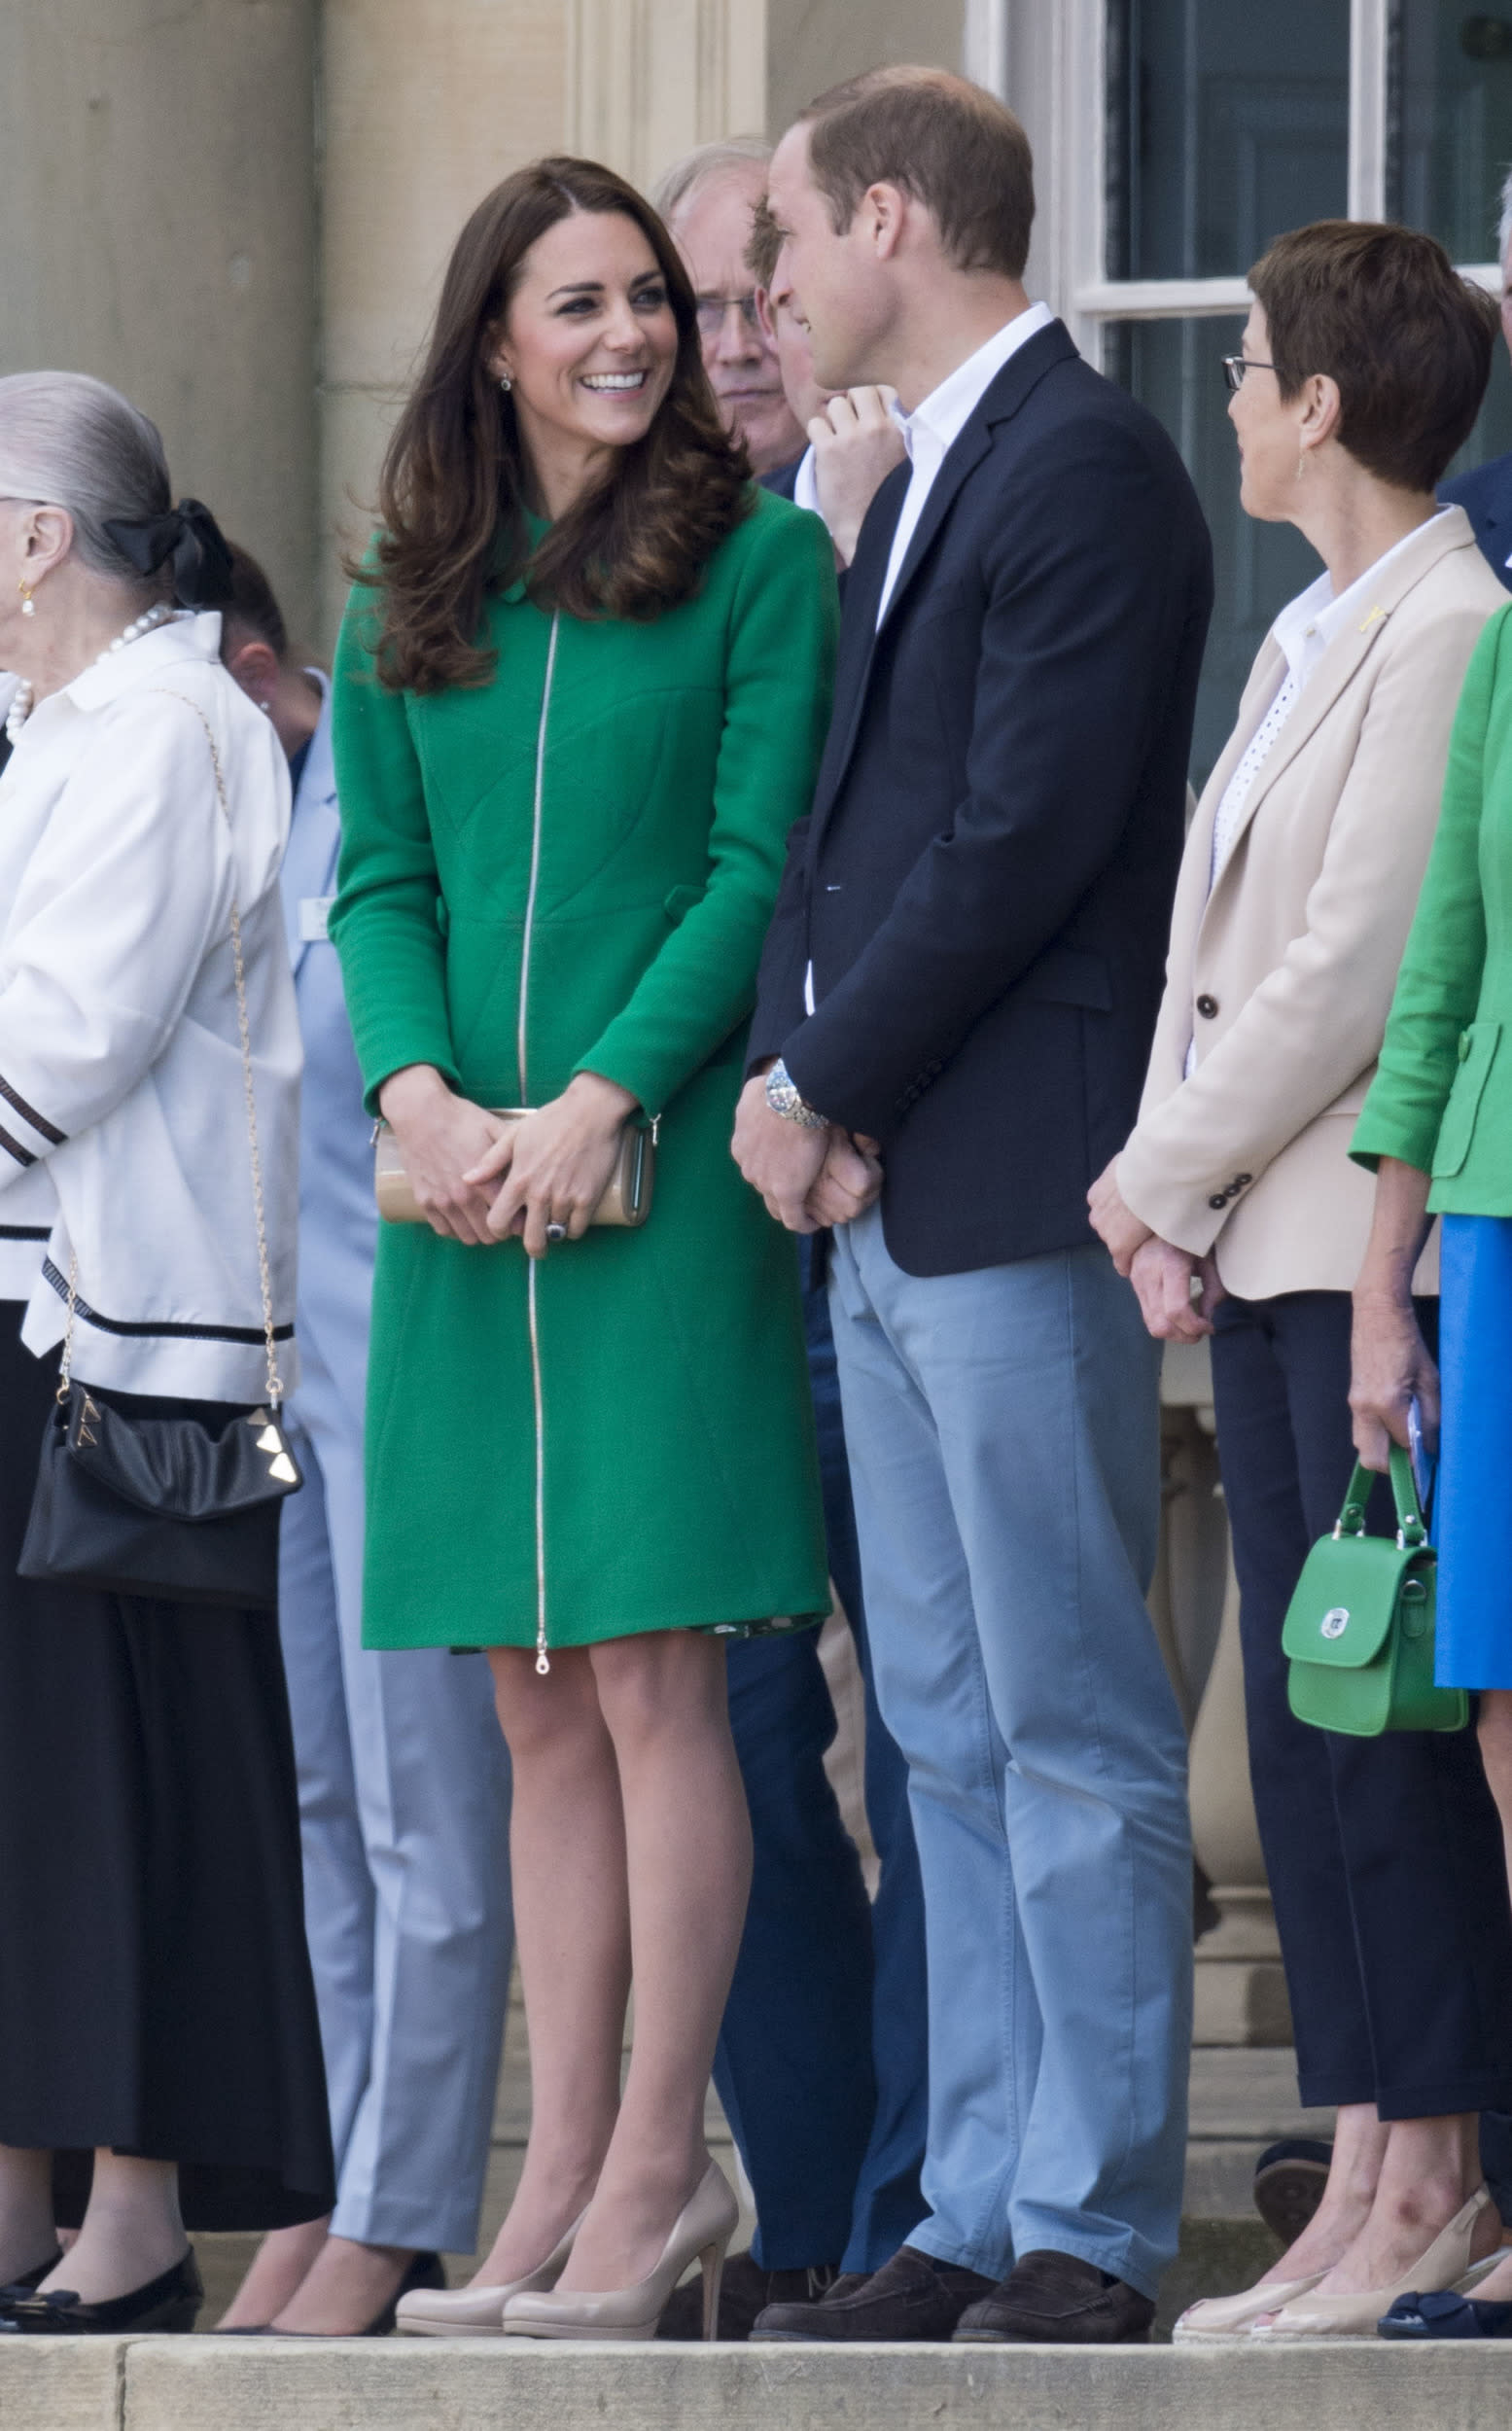 """Kate, William and Harry kicked off the Tour de France in July. Kate was wearing her green Erdem coat and <a href=""""https://www.amazon.com/L-K-Bennett-Womens-Sledge-Platform/dp/B01KW7DNG8"""">favorite L.K. Bennett sledge pumps</a>."""